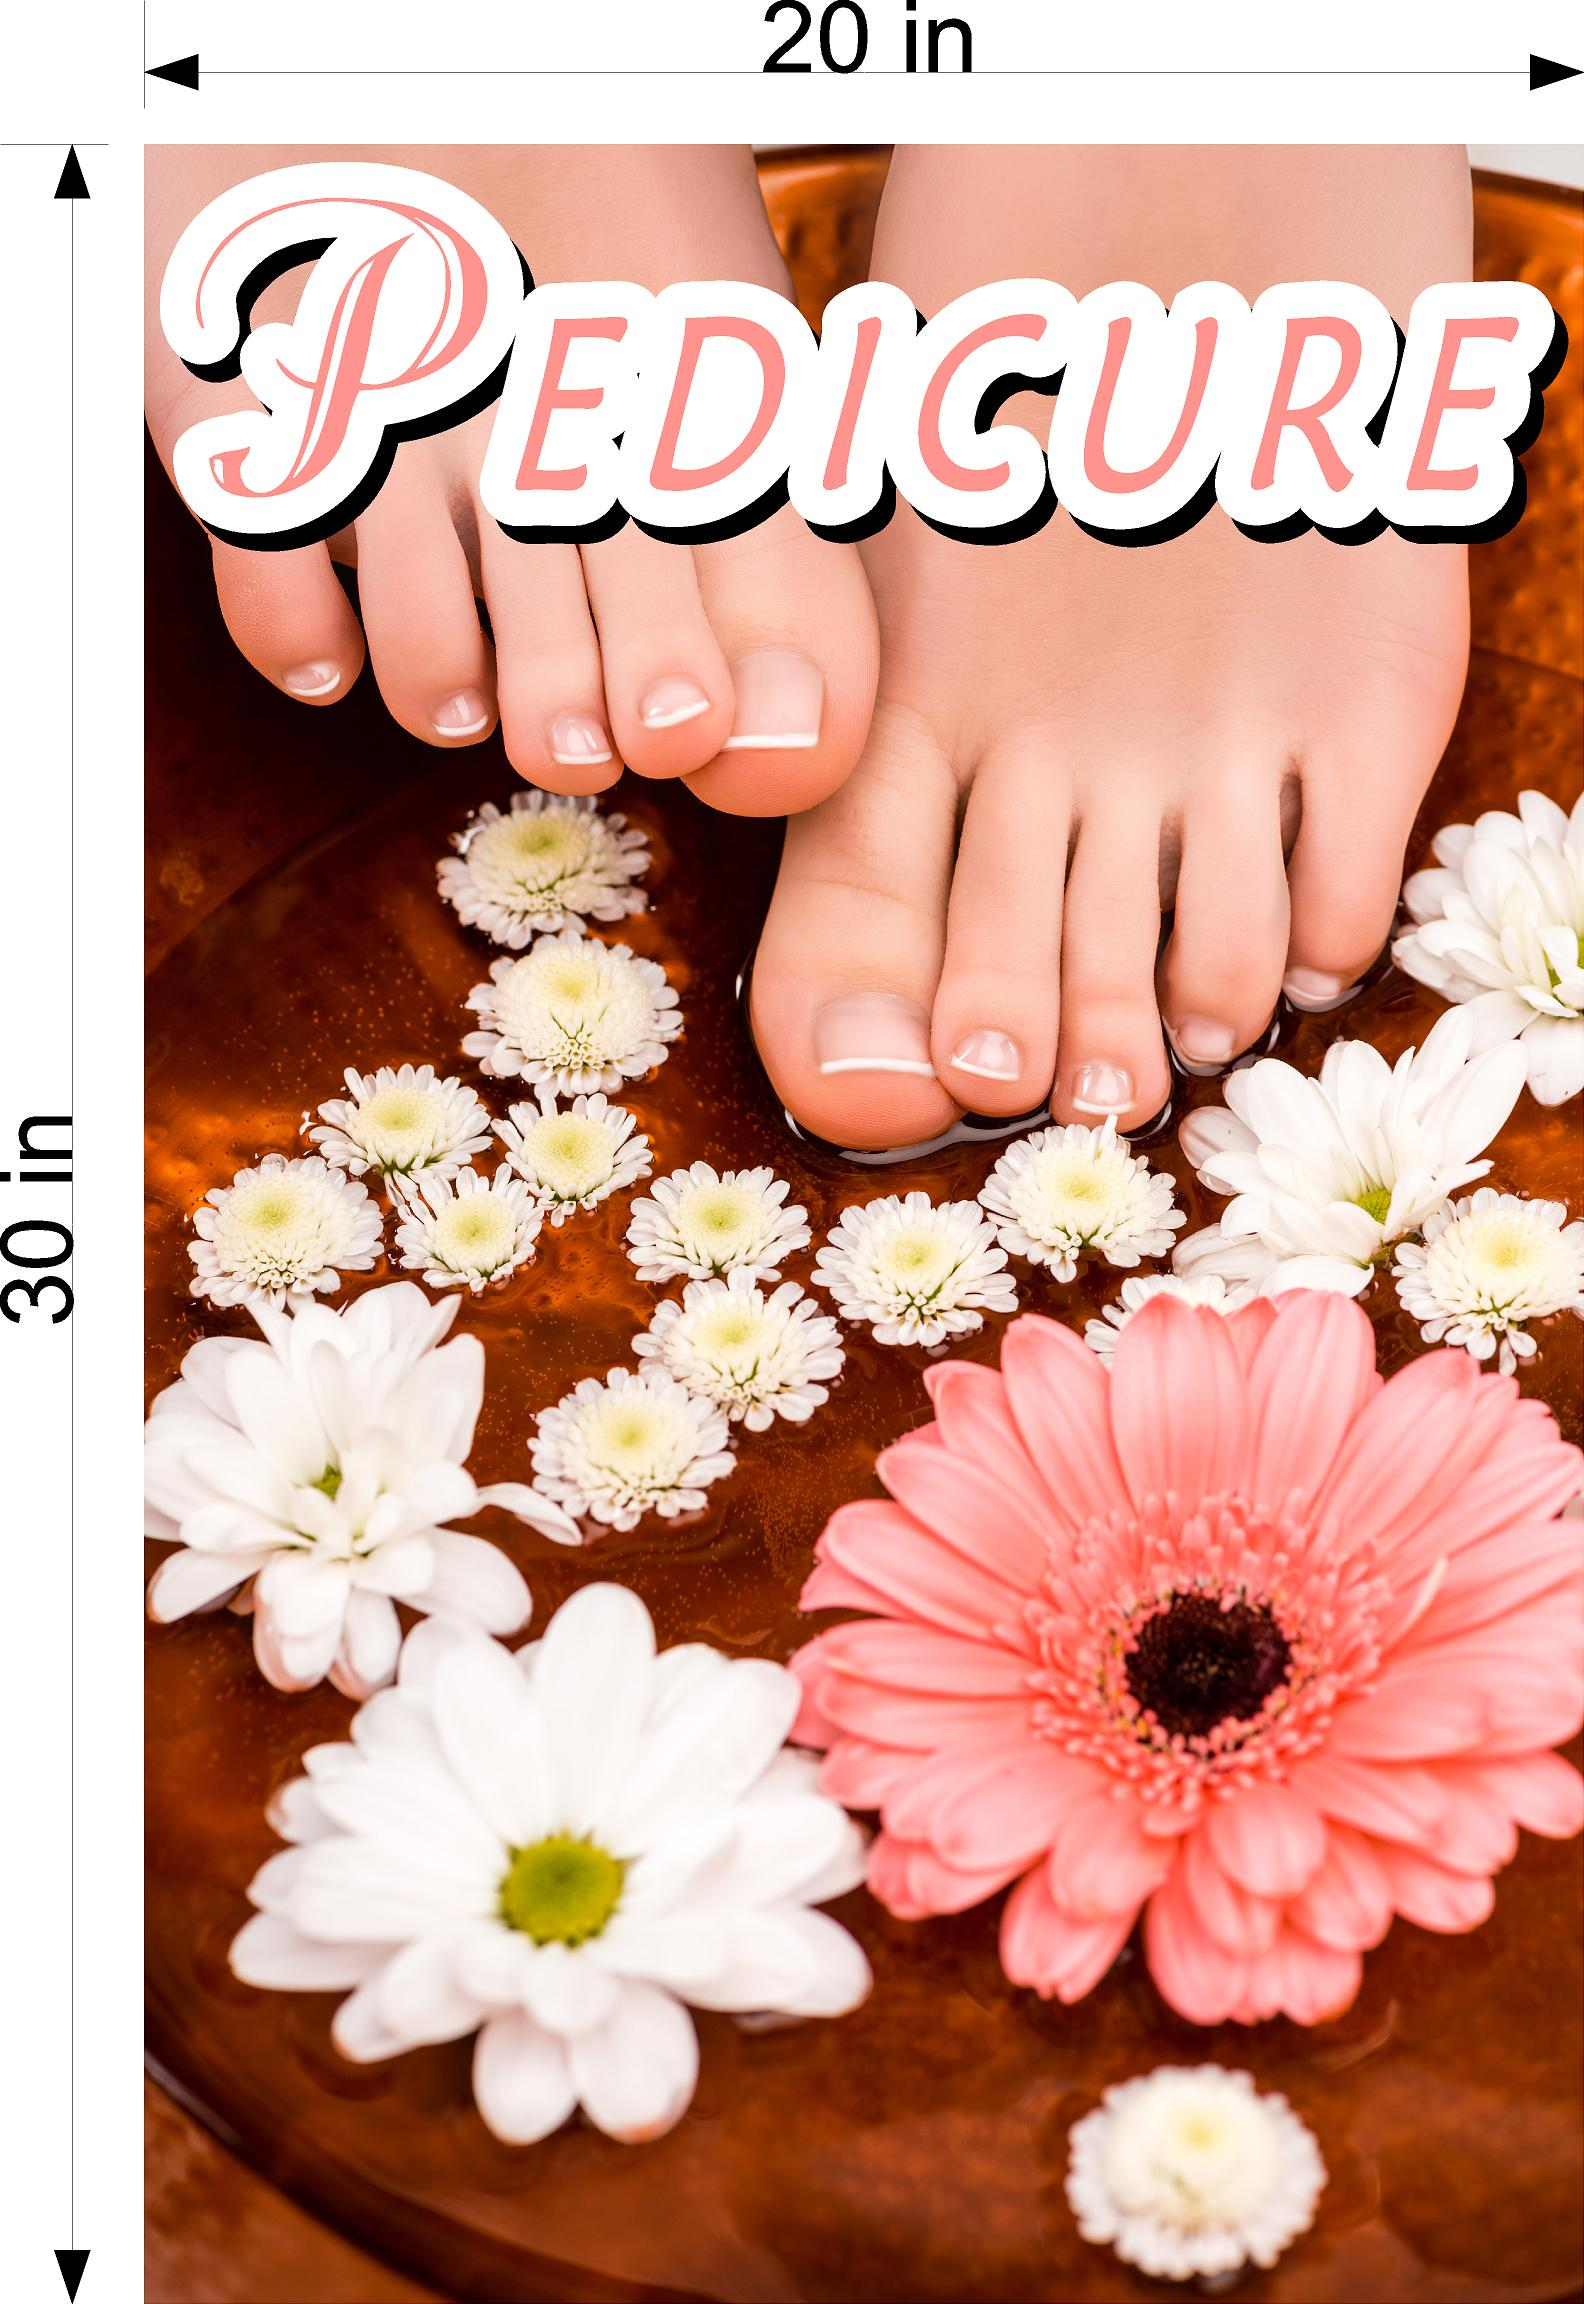 Pedicure 16 Photo-Realistic Paper Poster Premium Matte Interior Inside Sign Advertising Marketing Wall Window Non-Laminated Vertical